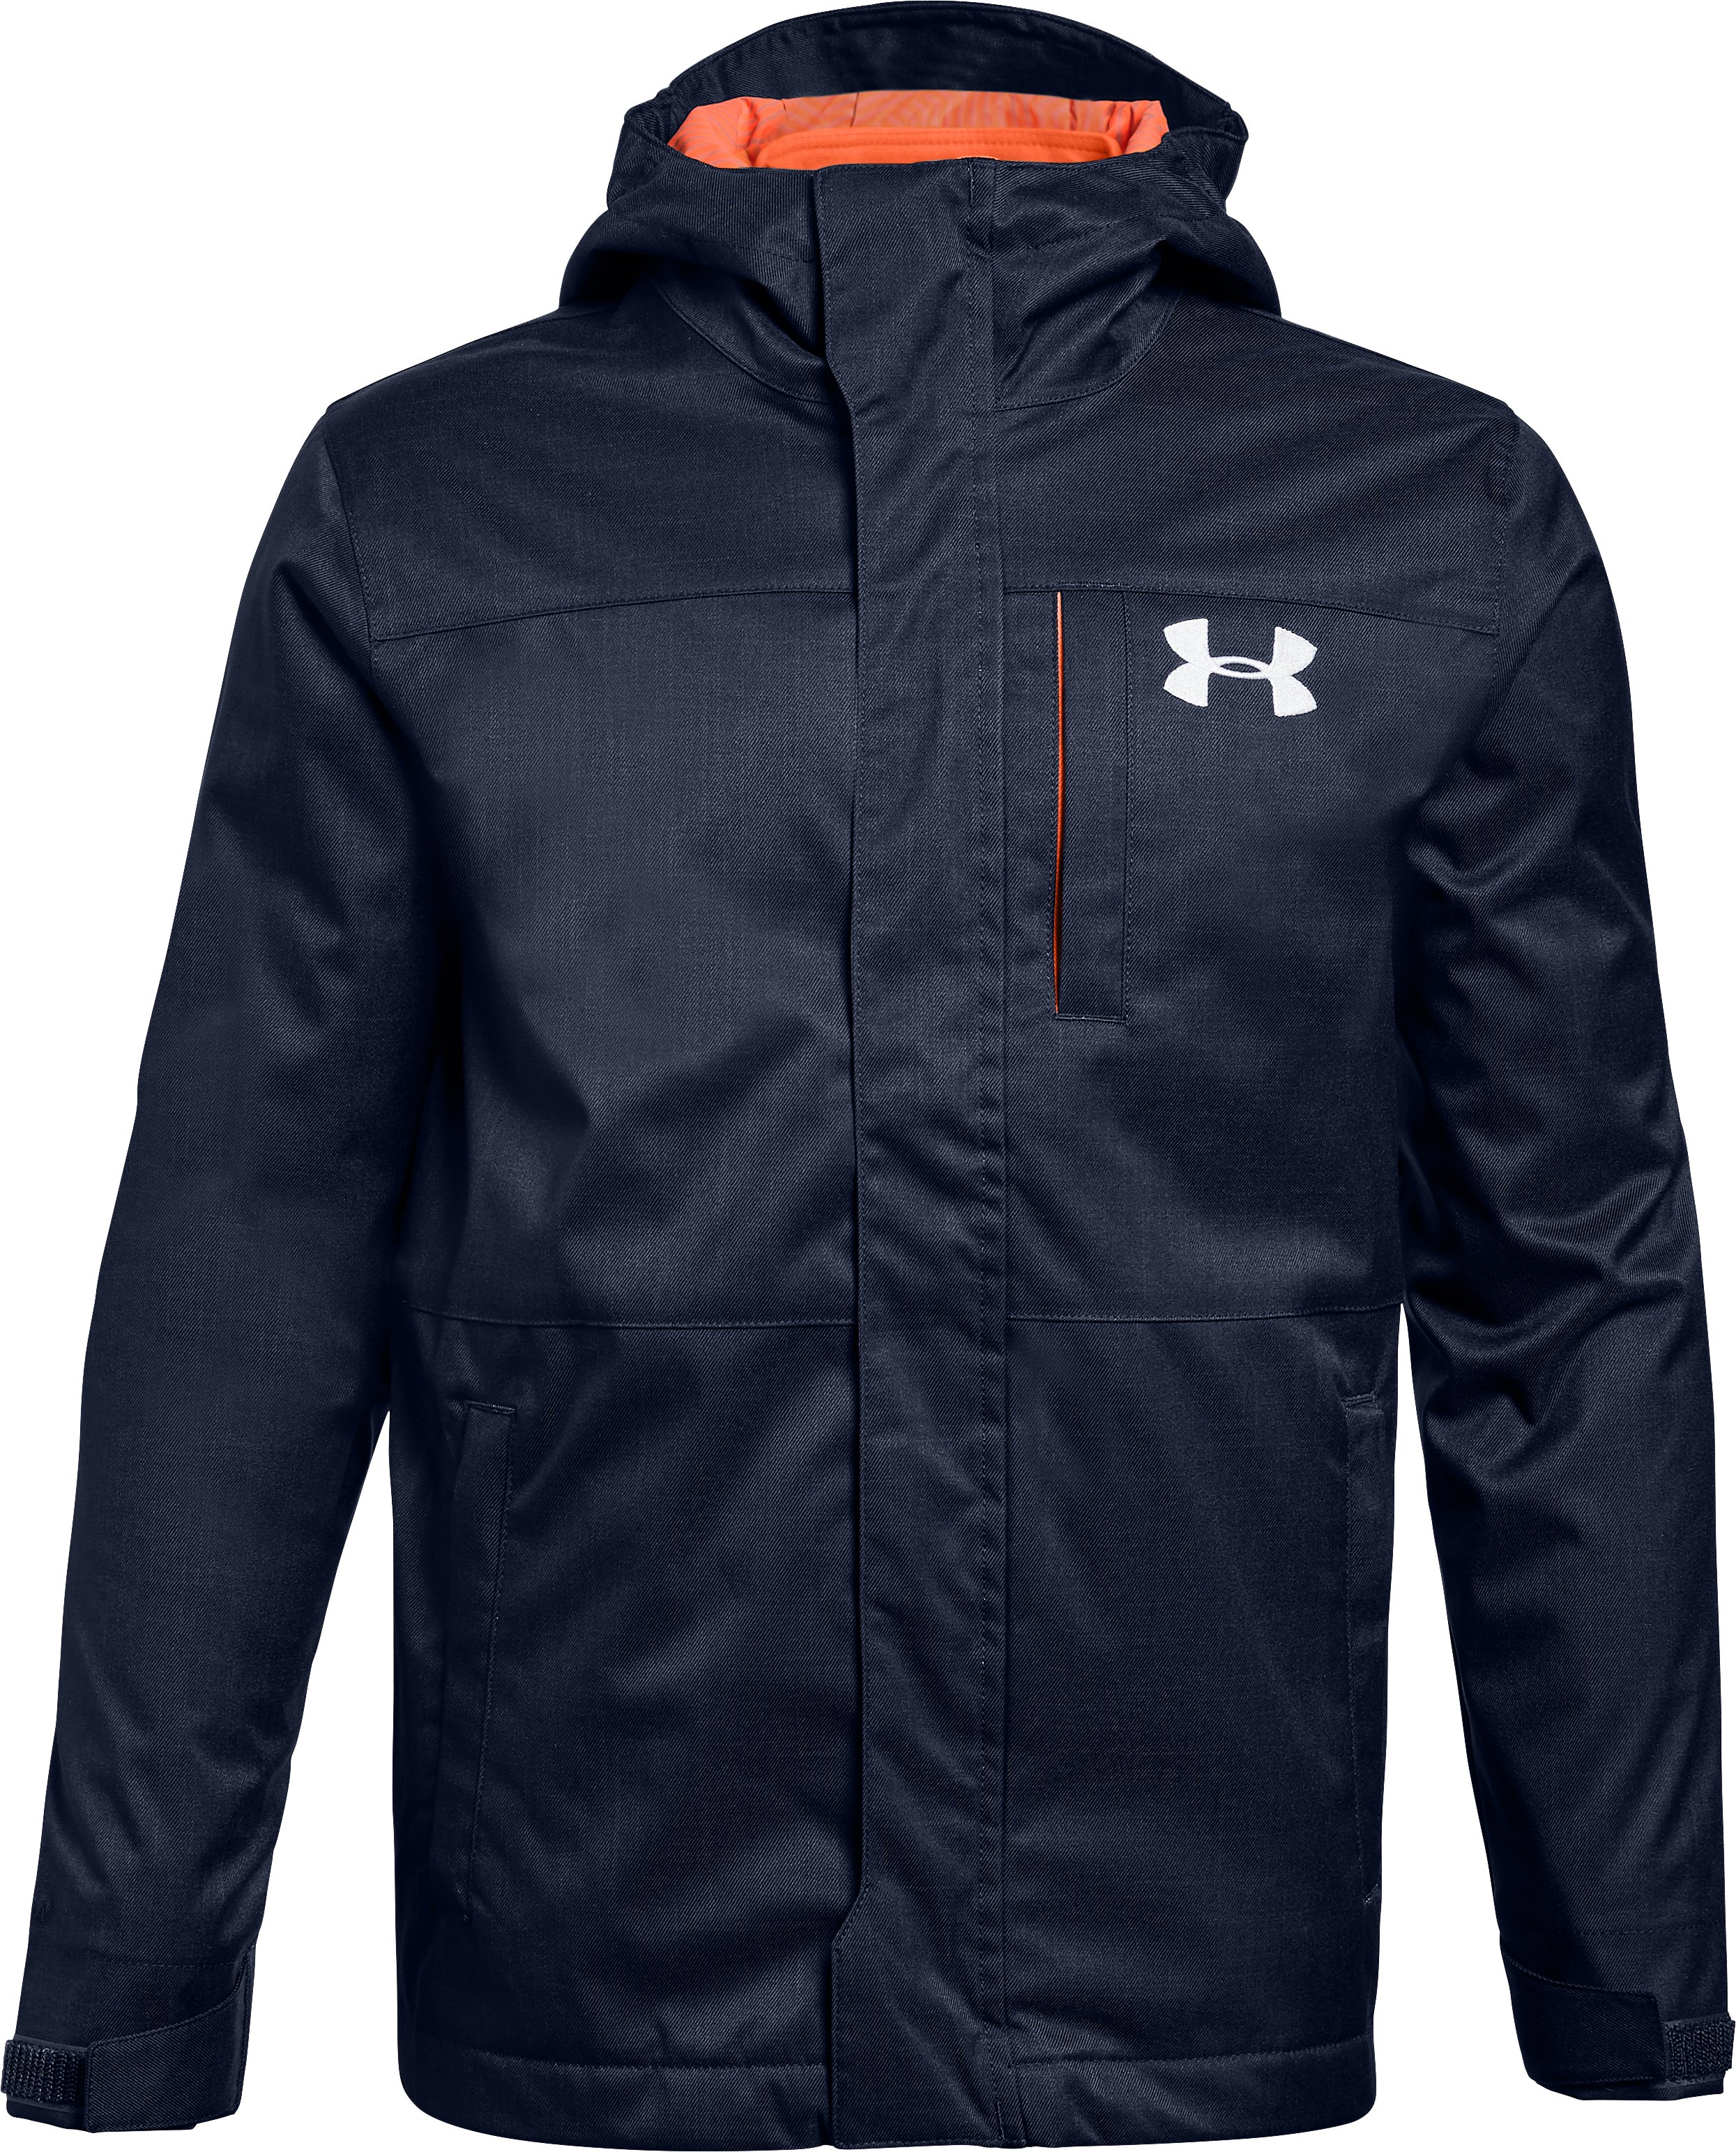 Boys' UA Storm Wildwood 3-in-1 Jacket, Midnight Navy